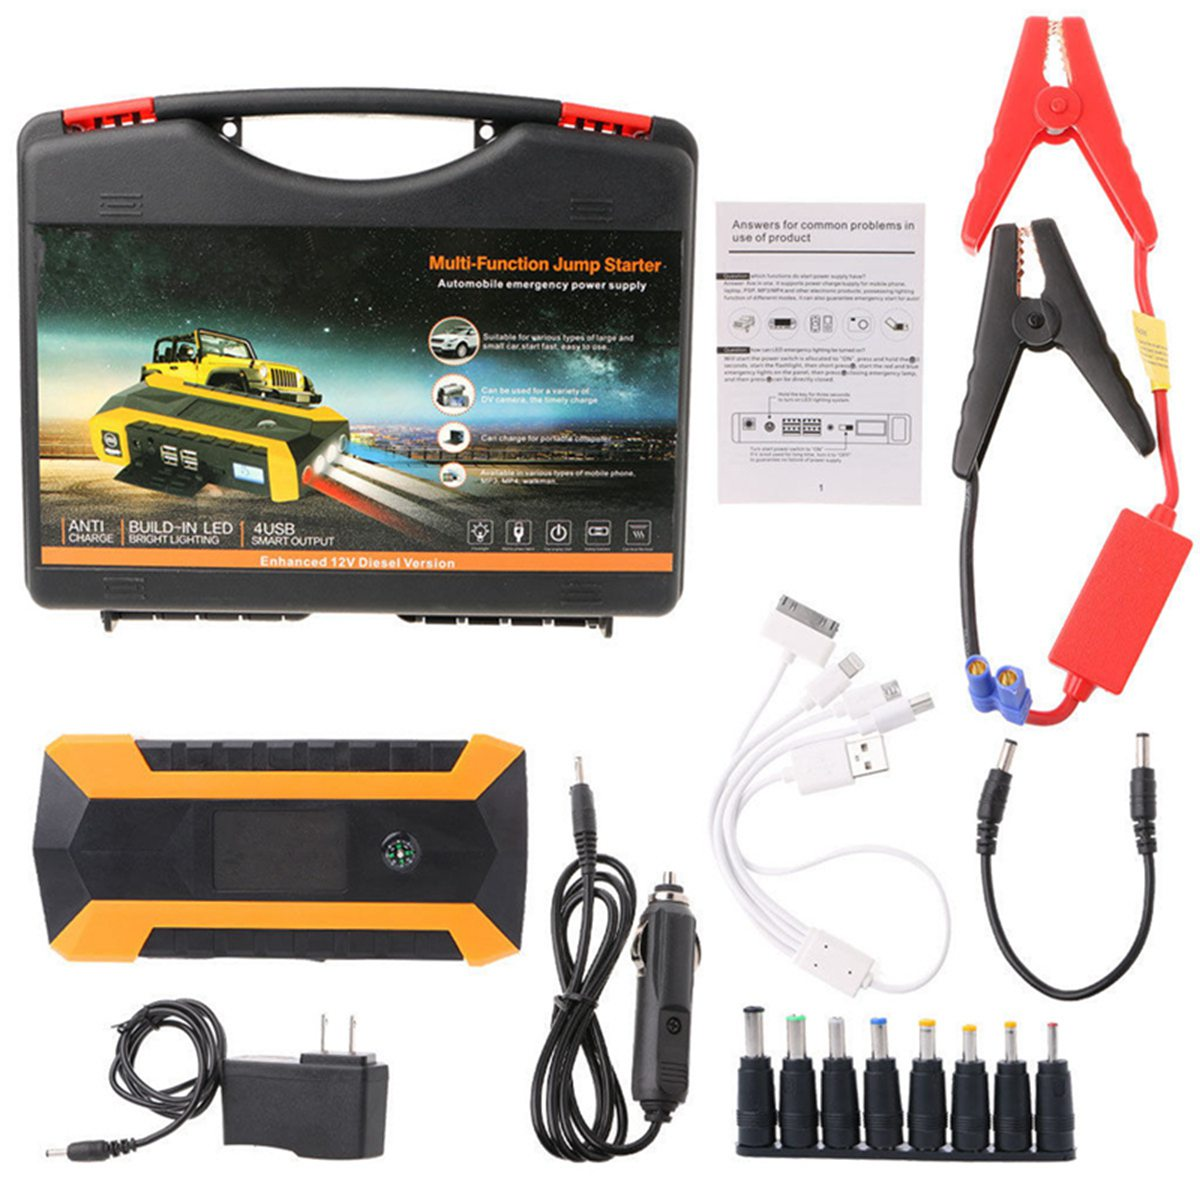 89800mAh 12V 4USB Car Jump Starter Car Battery Charger Starting Booster Power Bank Tool Kit For Auto Starting Device 89800mah led emergency car jump starter 12v 4usb charger battery power bank portable car battery booster charger starting device